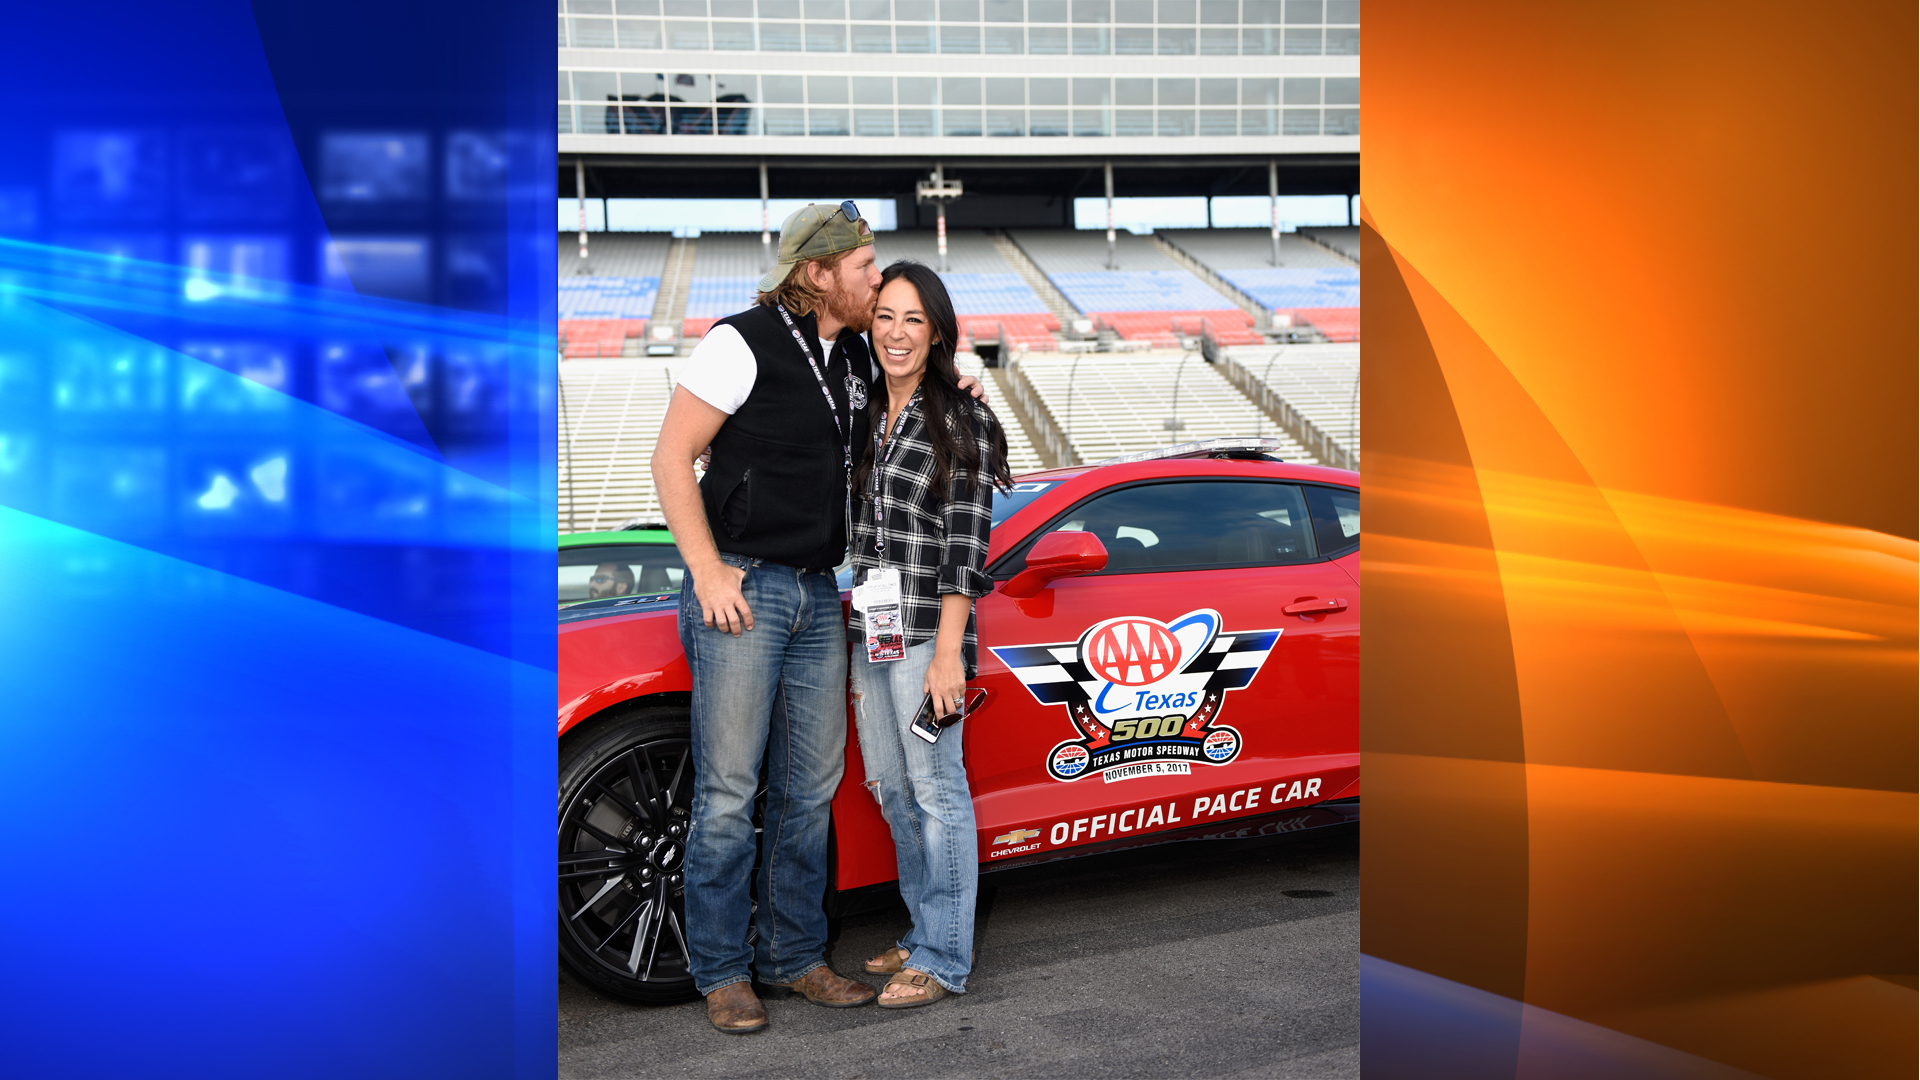 'Fixer Upper' stars Chip and Joanna Gaines pose with the Monster Energy NASCAR Cup Series AAA Texas 500 pace car at Texas Motor Speedway on November 5, 2017, in Fort Worth, Texas. (Credit: Jared C. Tilton/Getty Images)